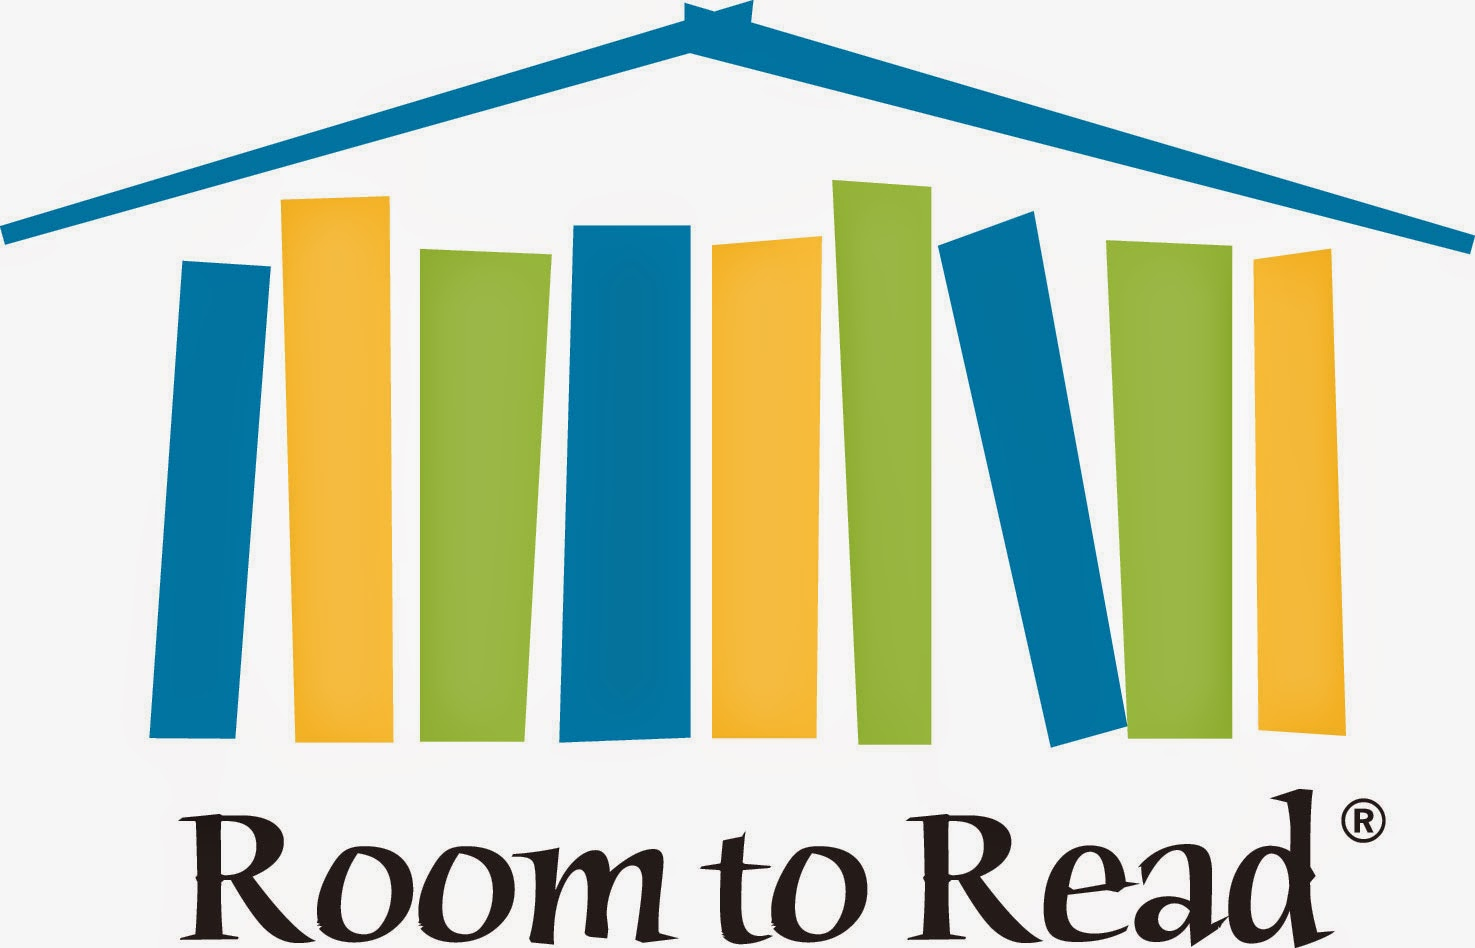 2014 Room to Read World Change Challenge